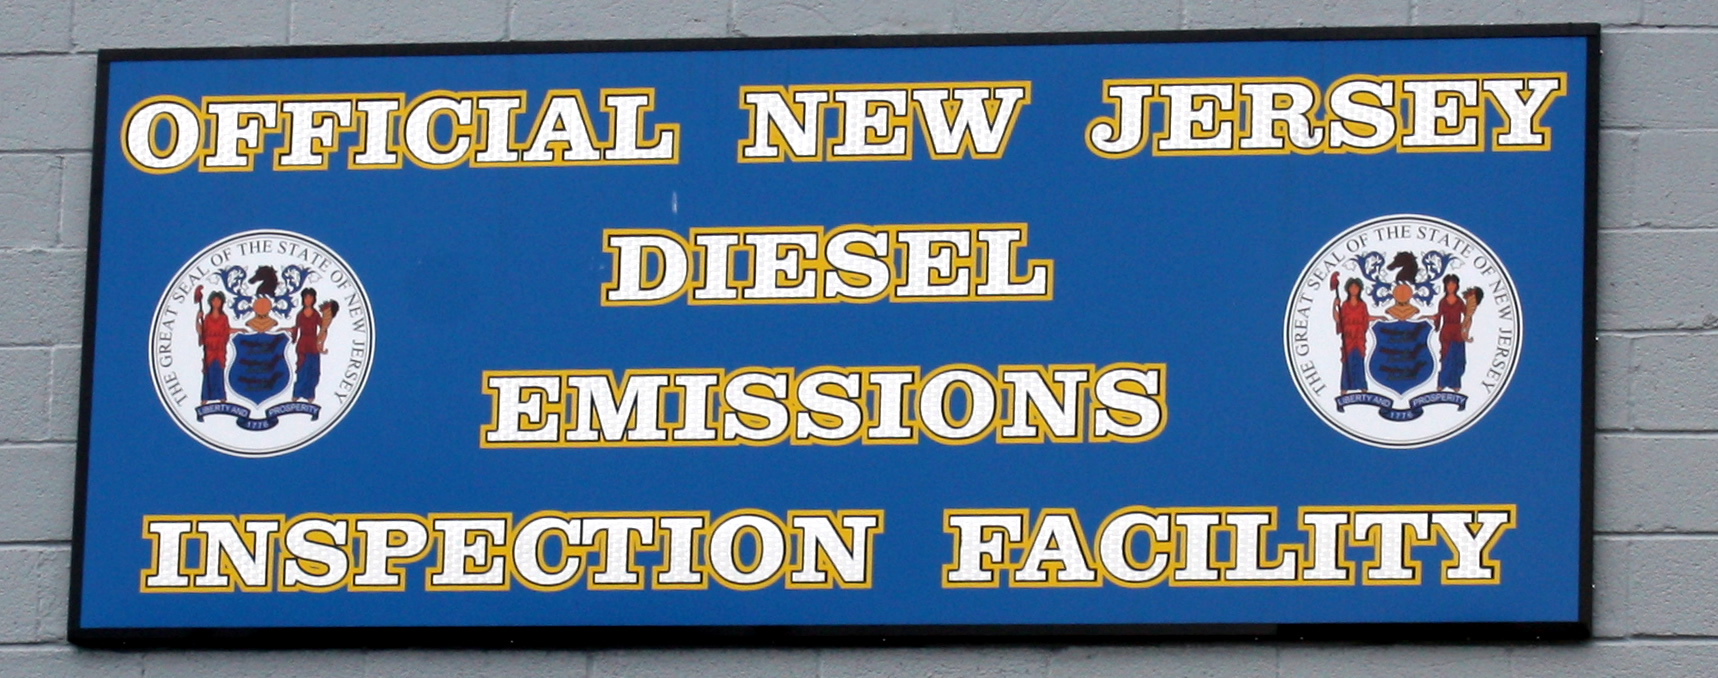 New Jersey Diesel Emissions inspection facility